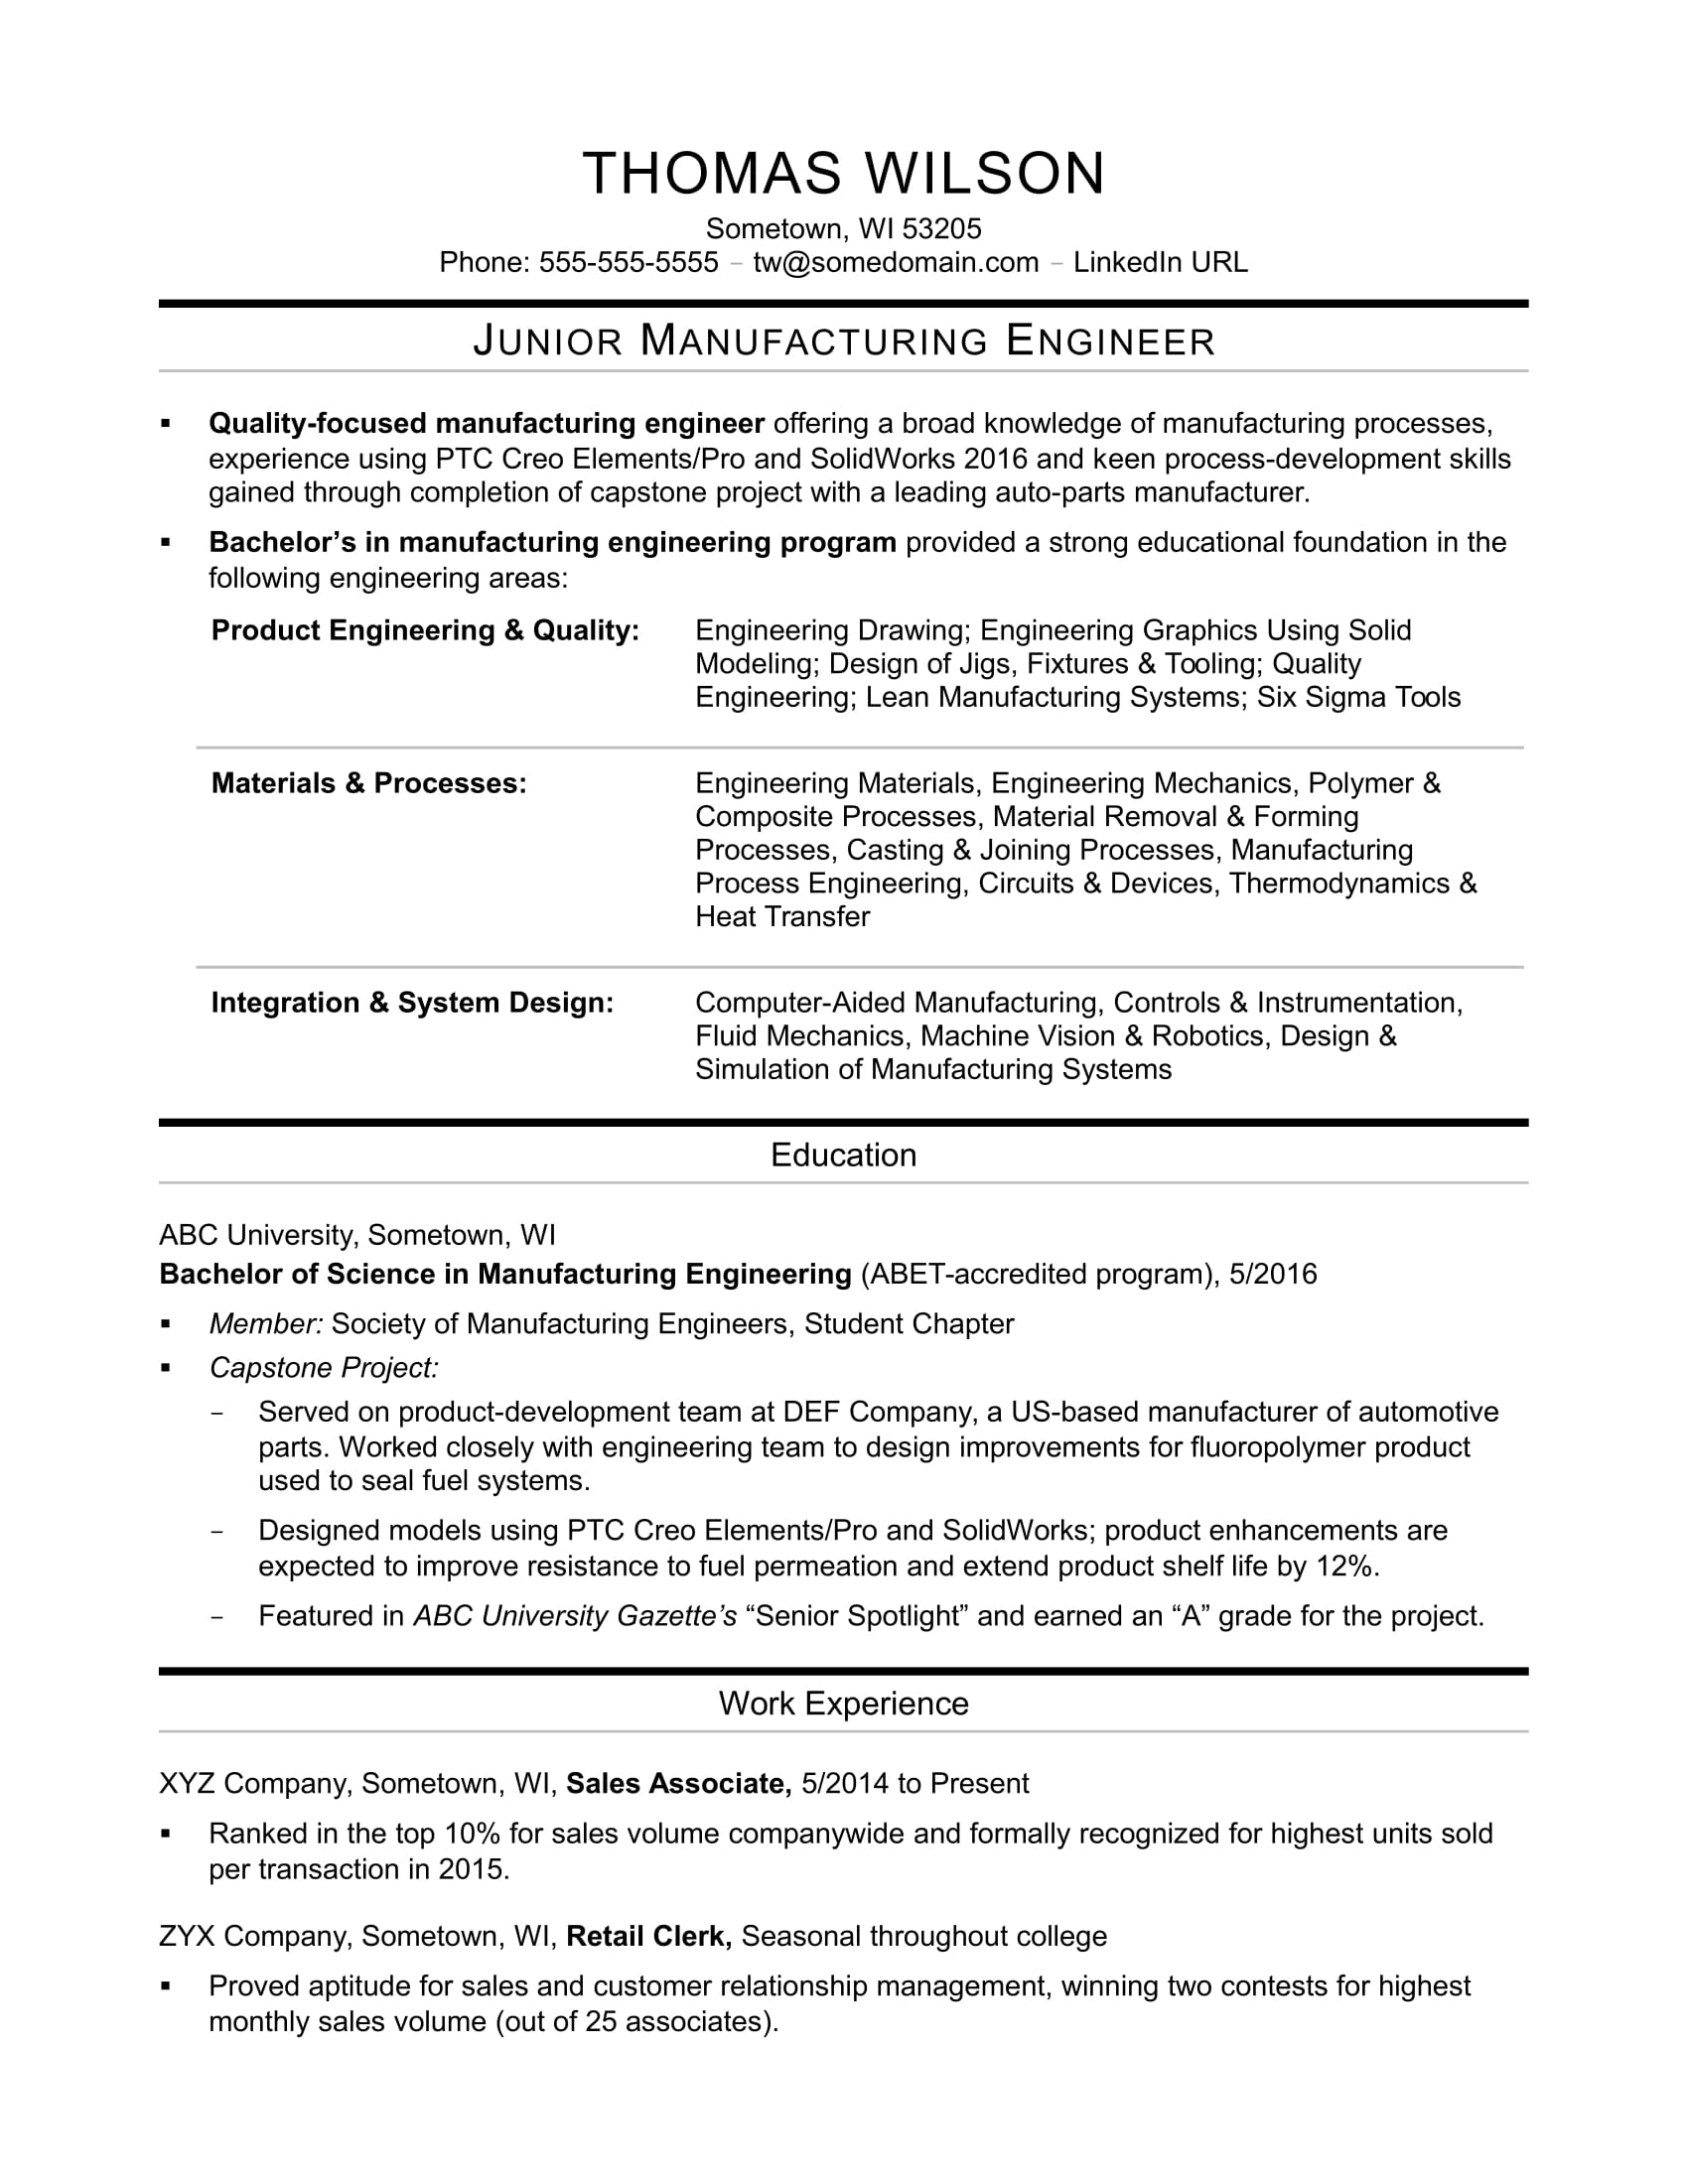 Sample Resume for an Entry-Level Manufacturing Engineer | Monster.com